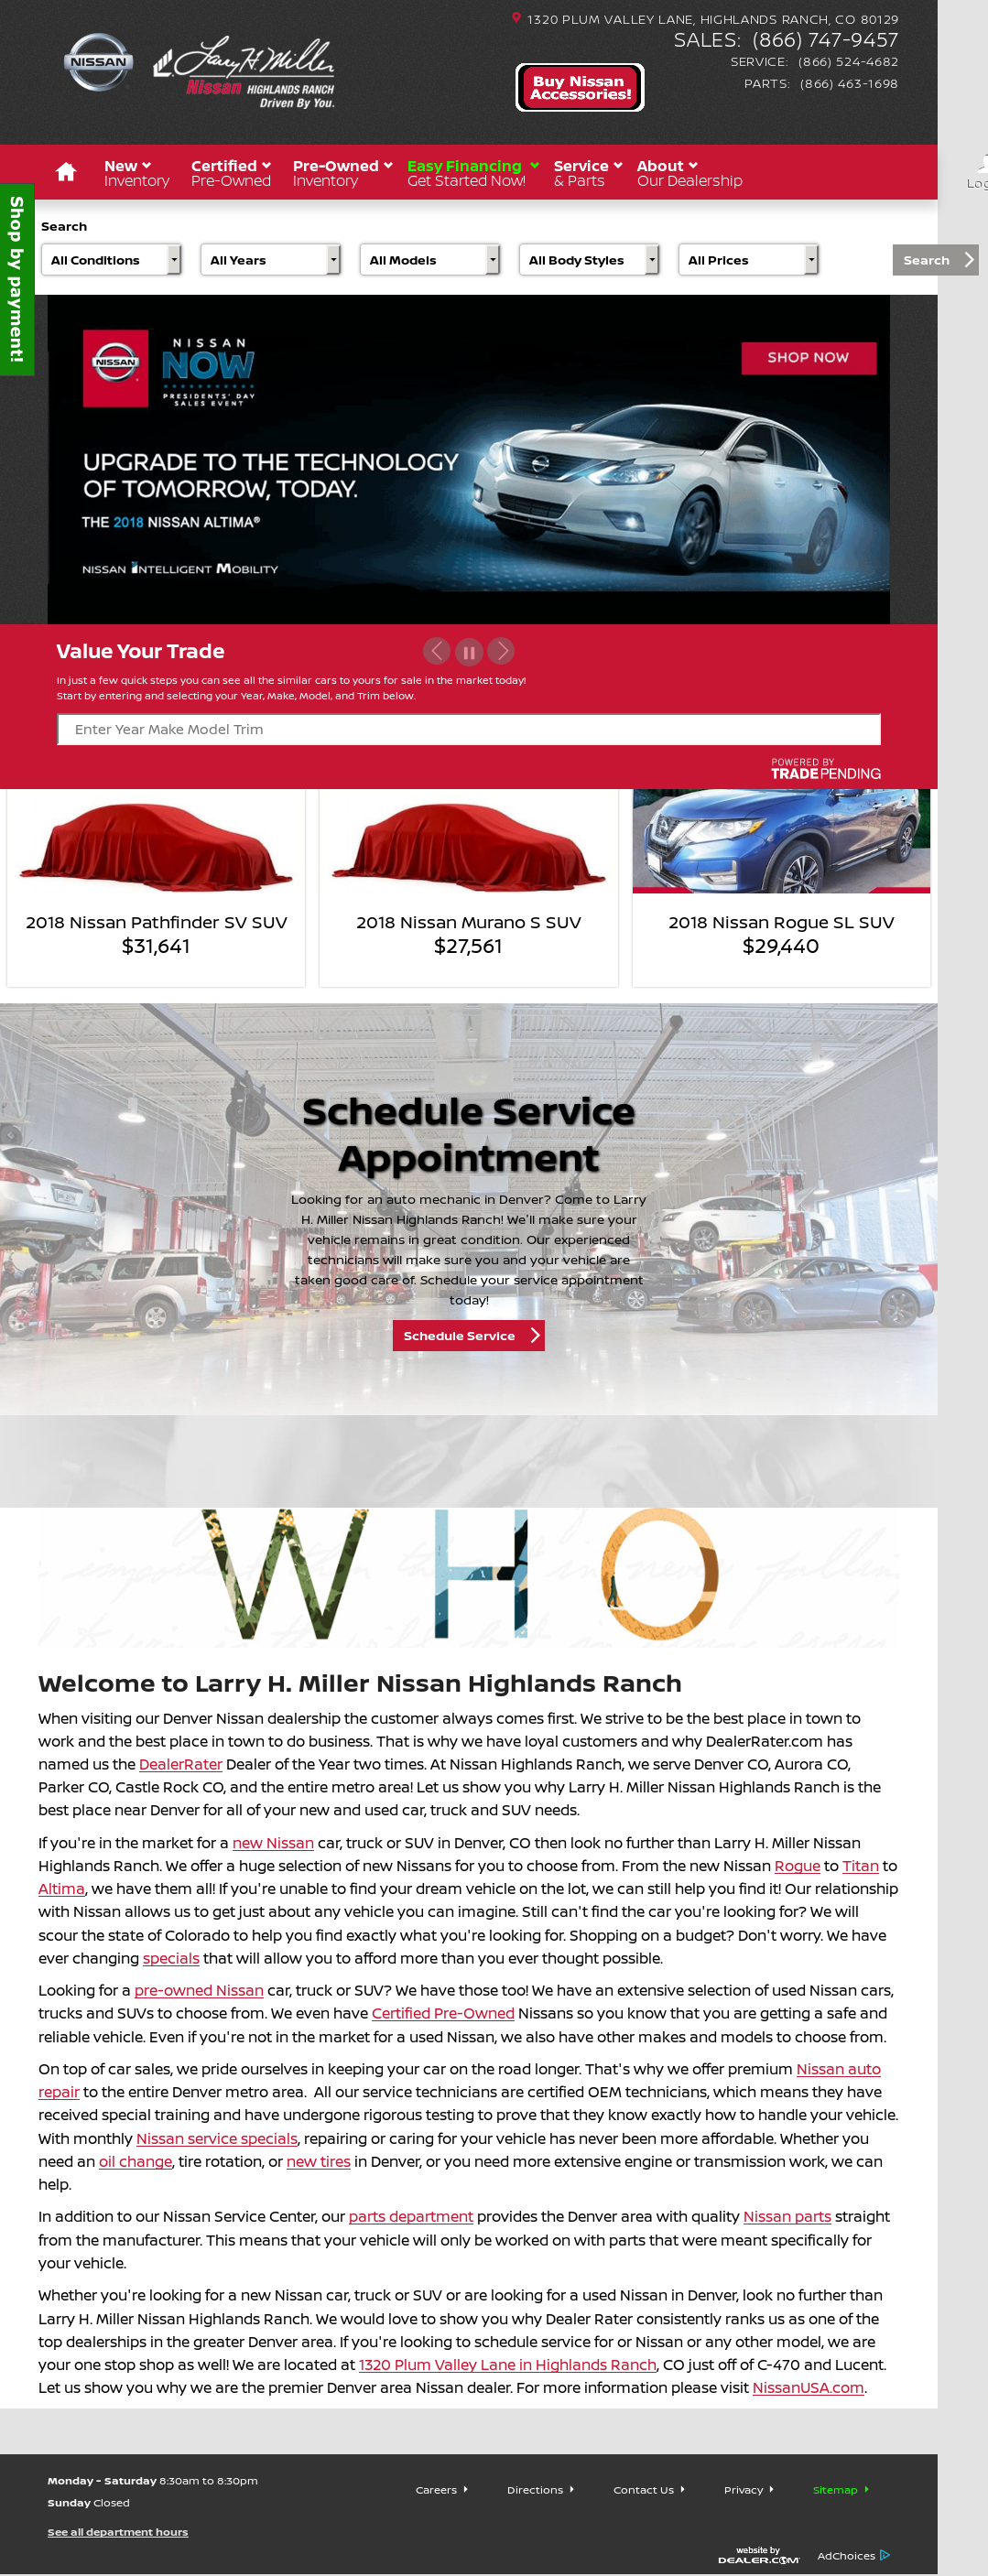 Larry H Miller Nissan Highlands Ranch >> Larry H. Miller Nissan Highlands Ranch Competitors, Revenue and Employees - Owler Company Profile